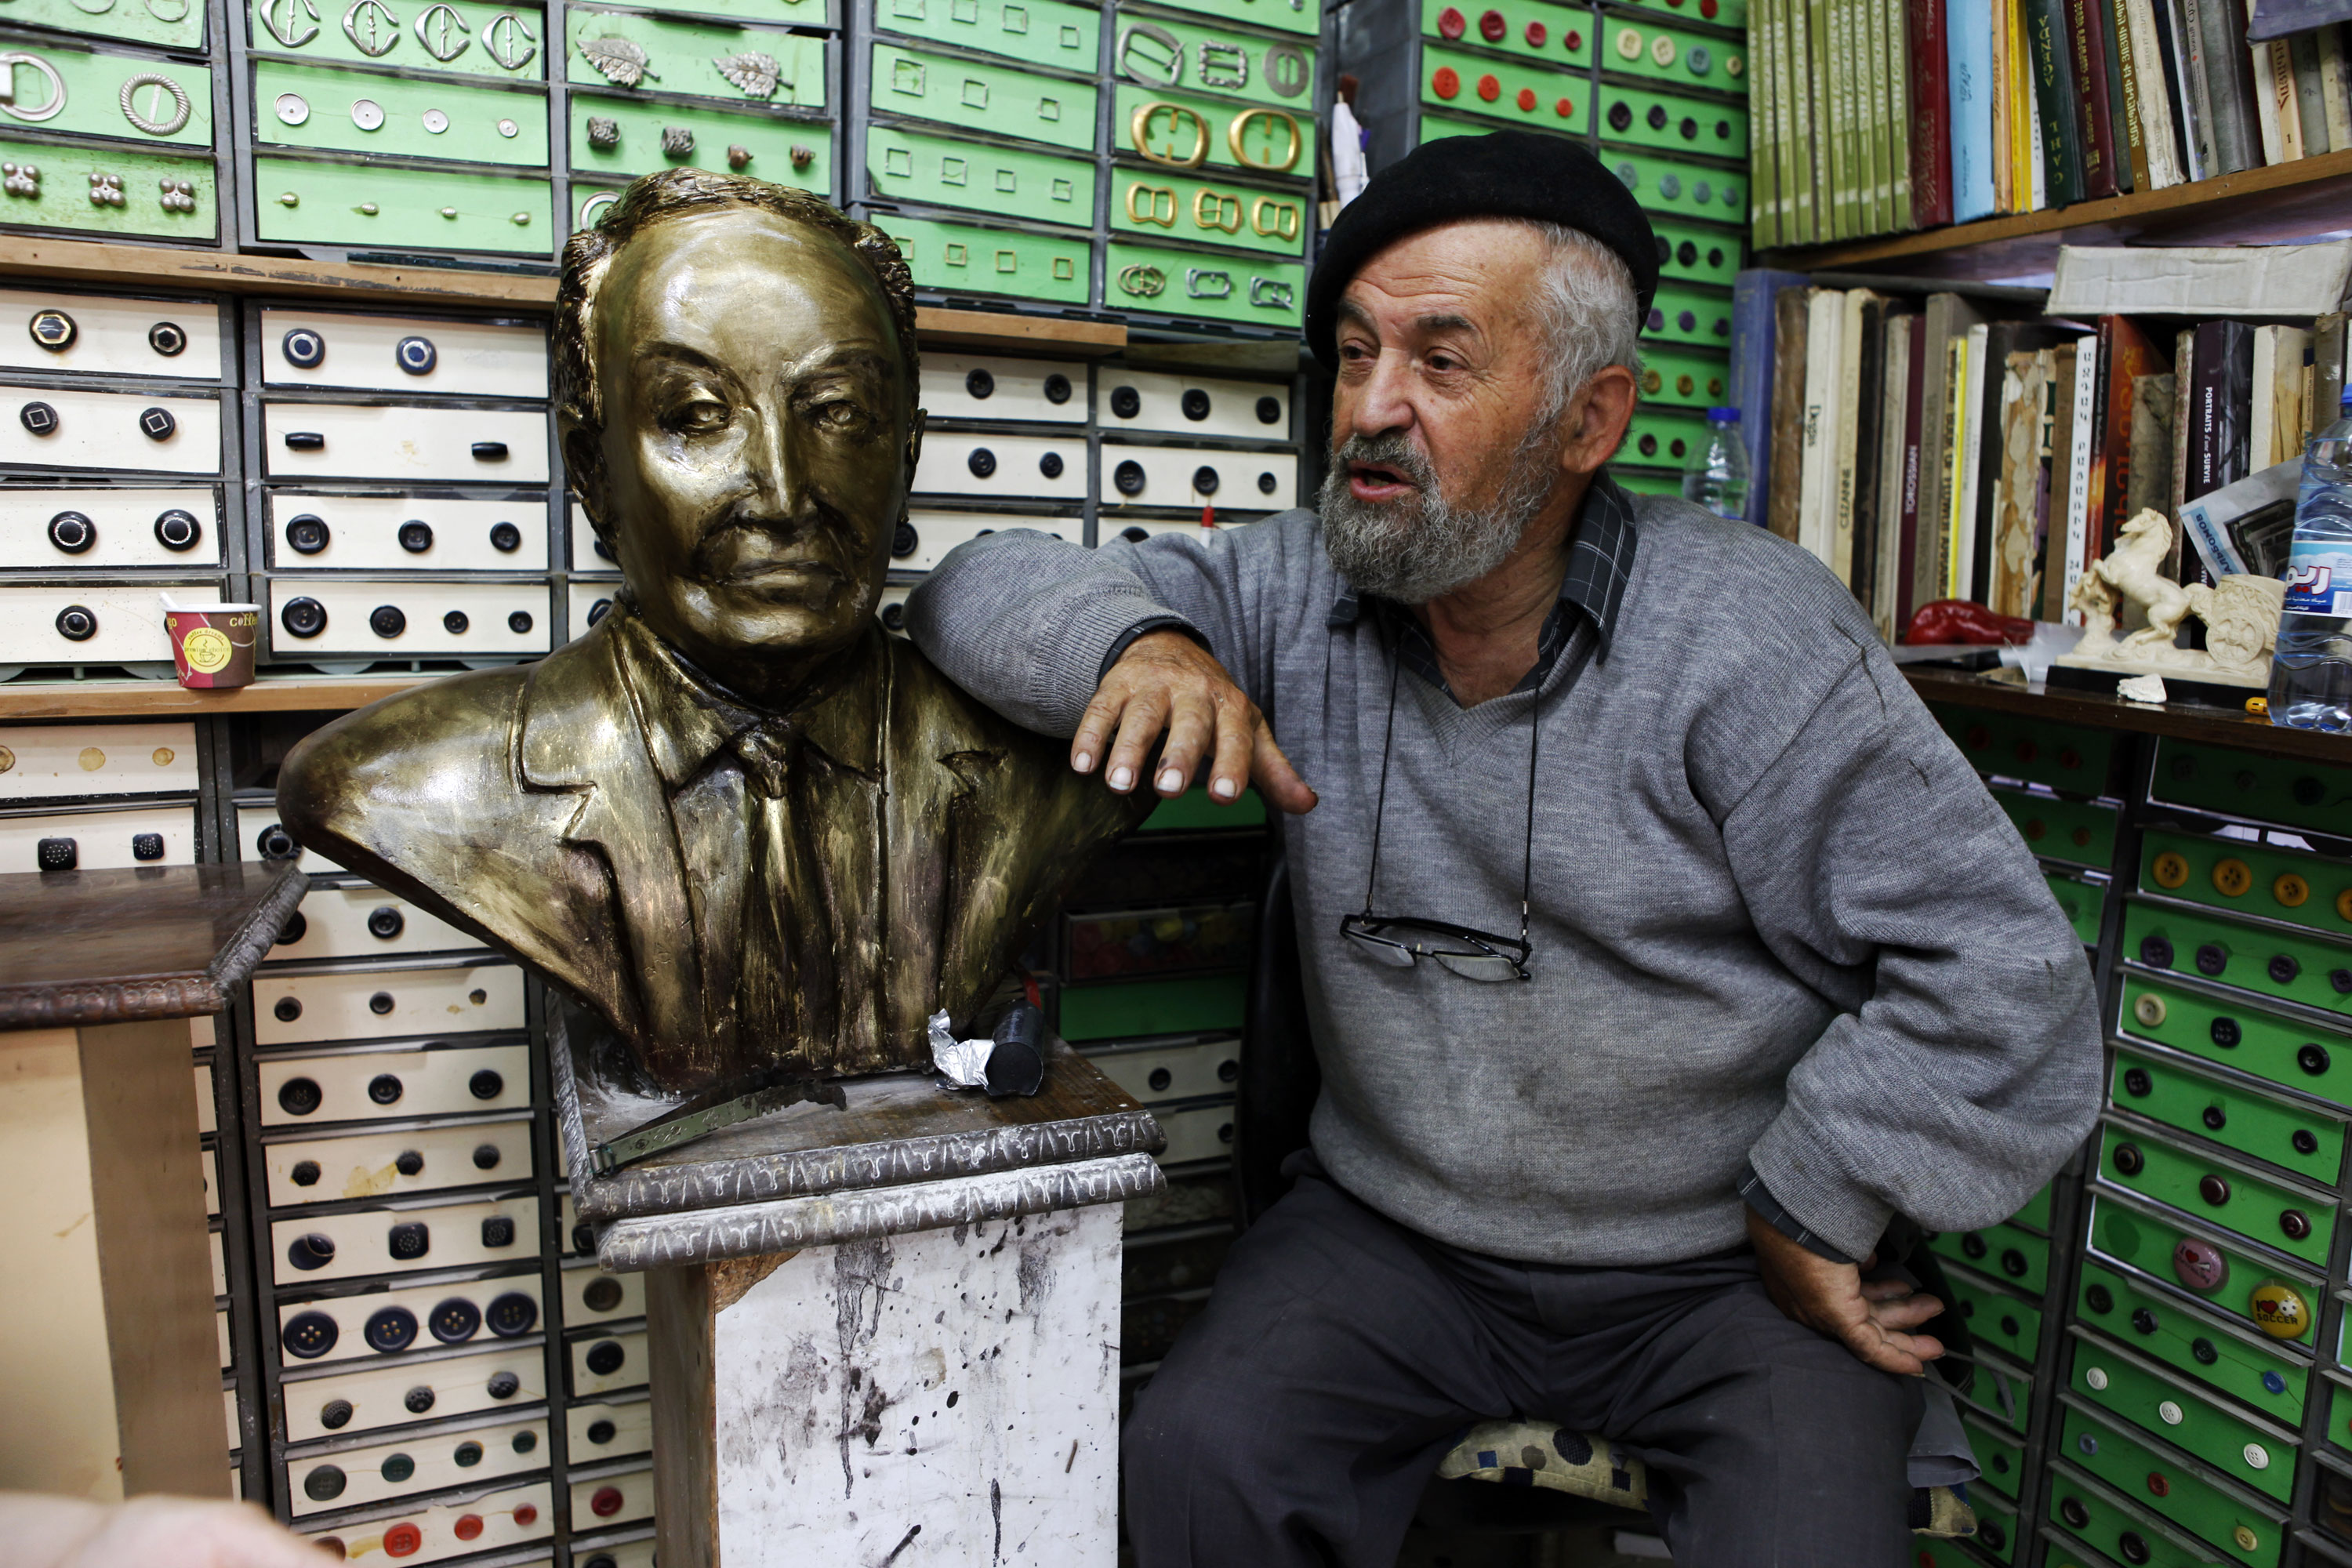 Sculptor, button-maker and local neighbourhood personality Ashod Tazian tells his life story in his shop on one of Bourj Hammoud's main shopping streets. [Adrian Hartrick/Al Jazeera]